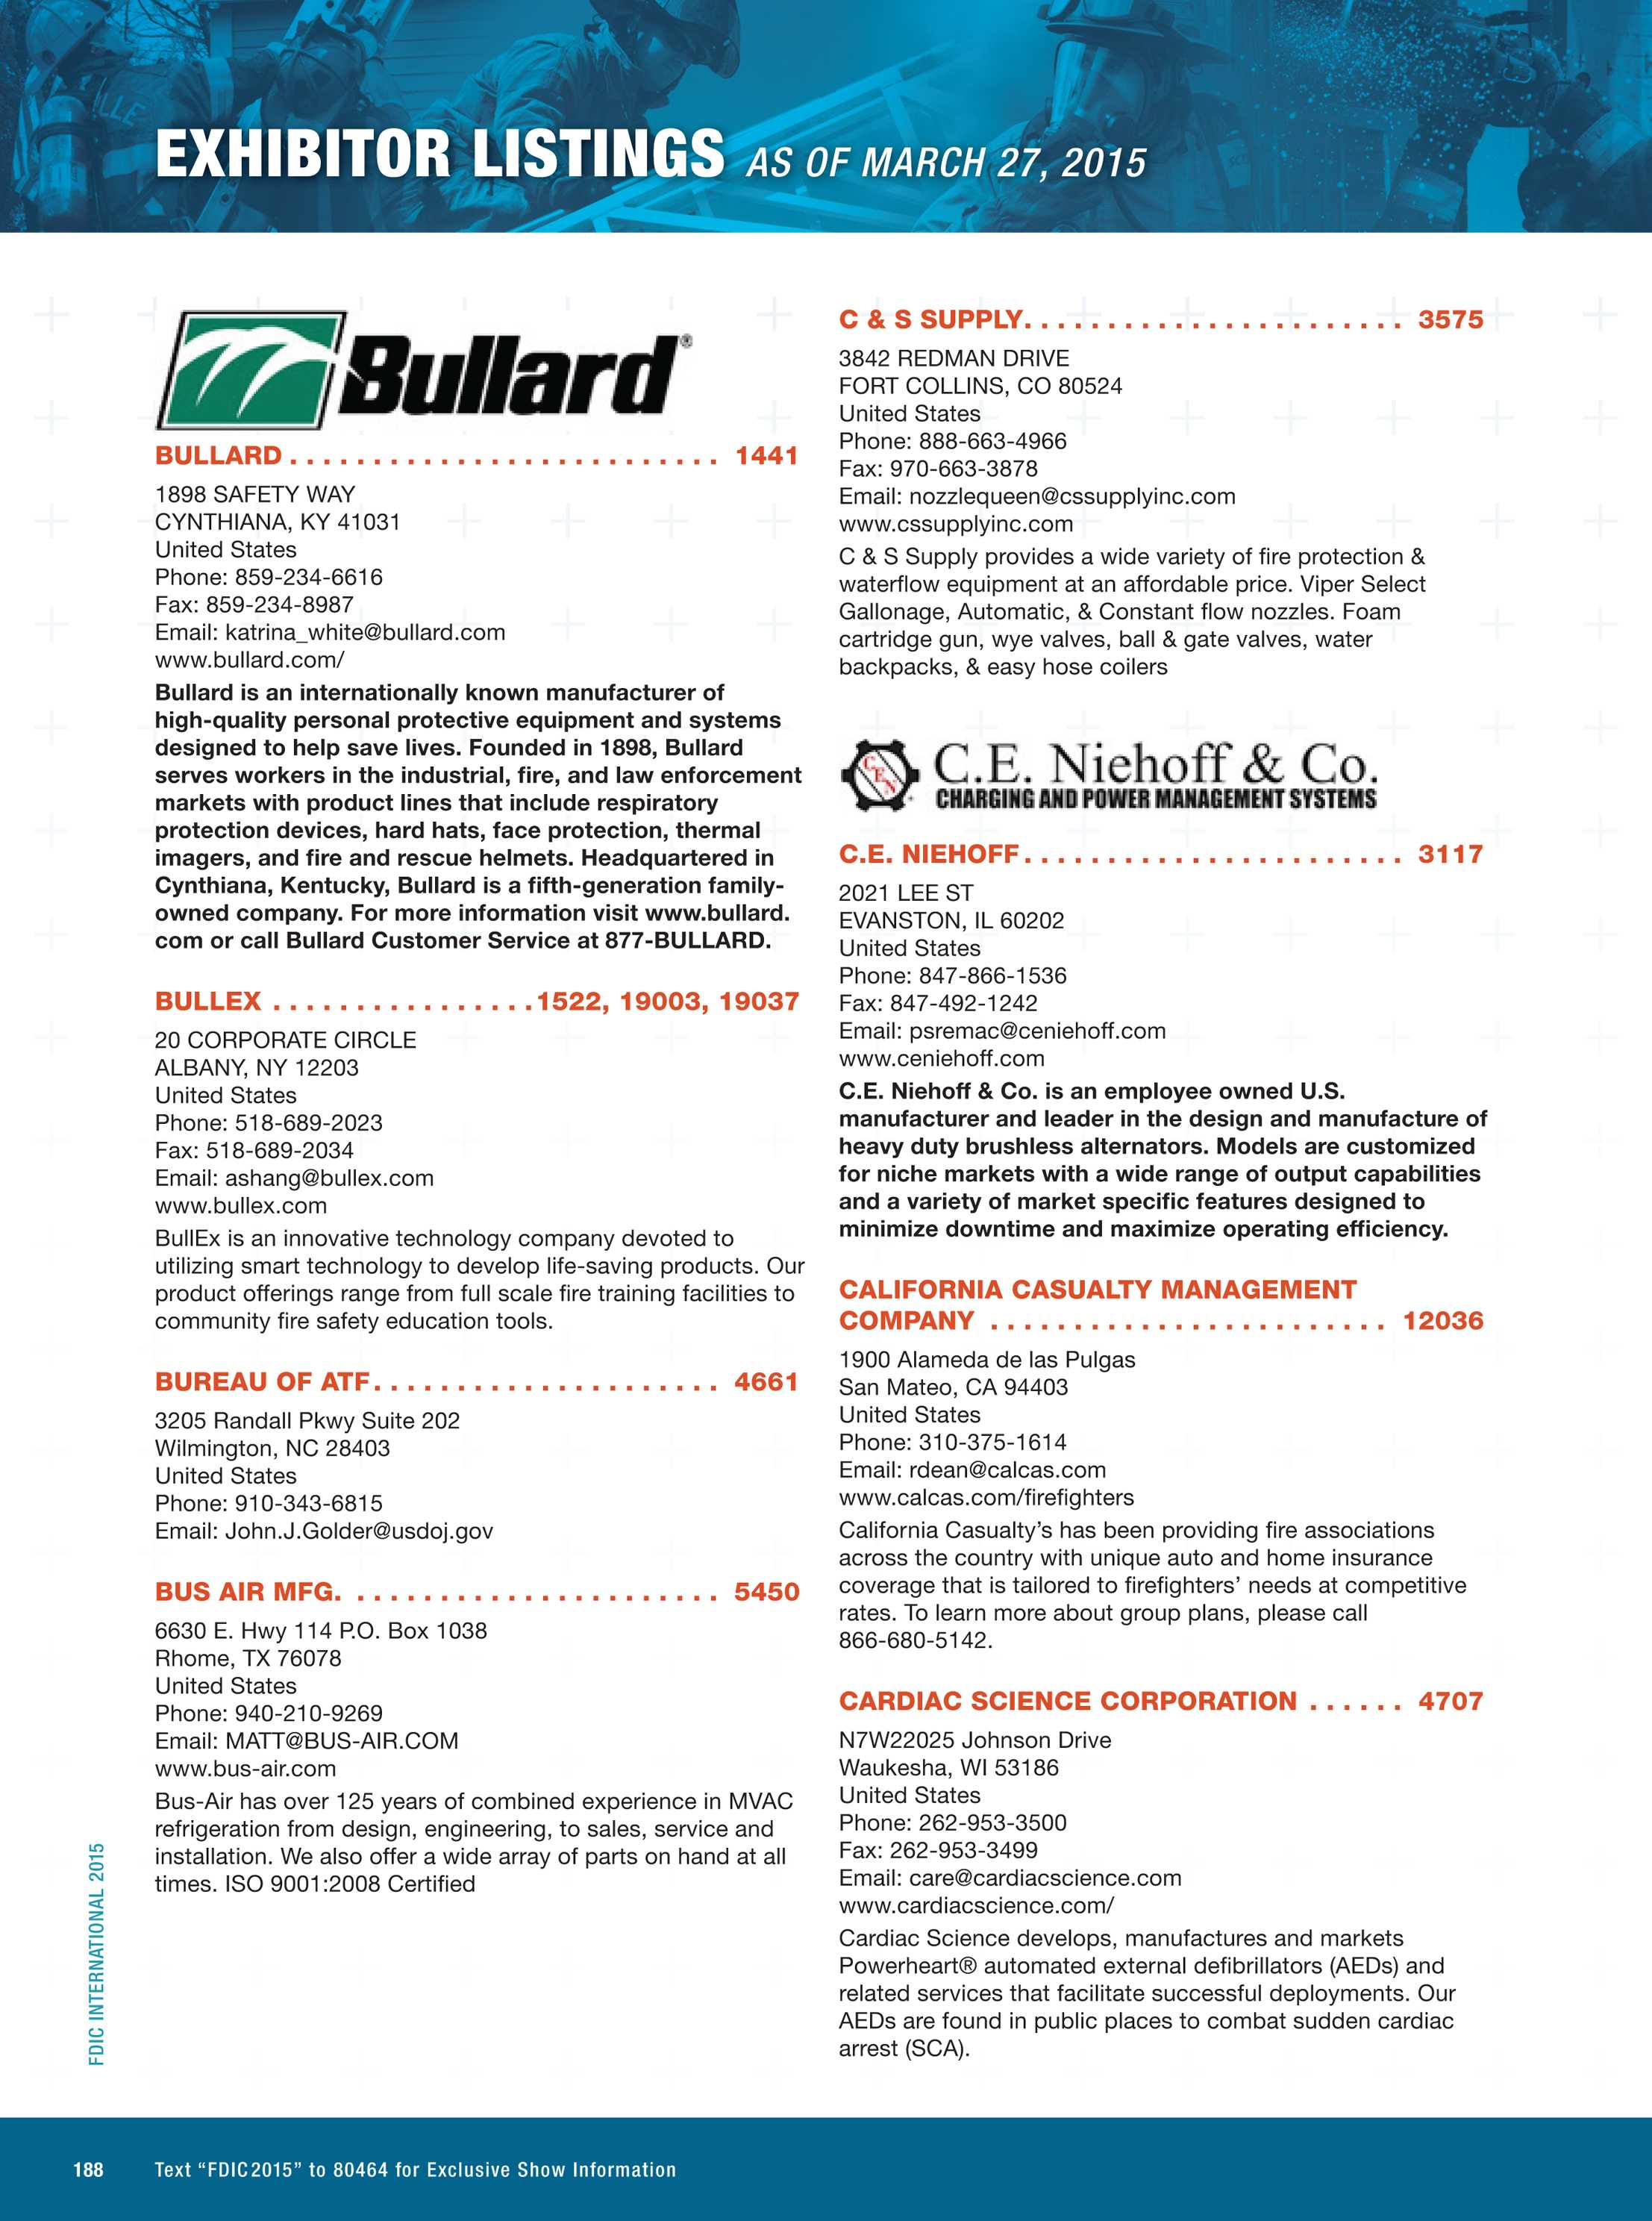 Pennwell Supplements - FDIC 2015 Event Guide - page 188